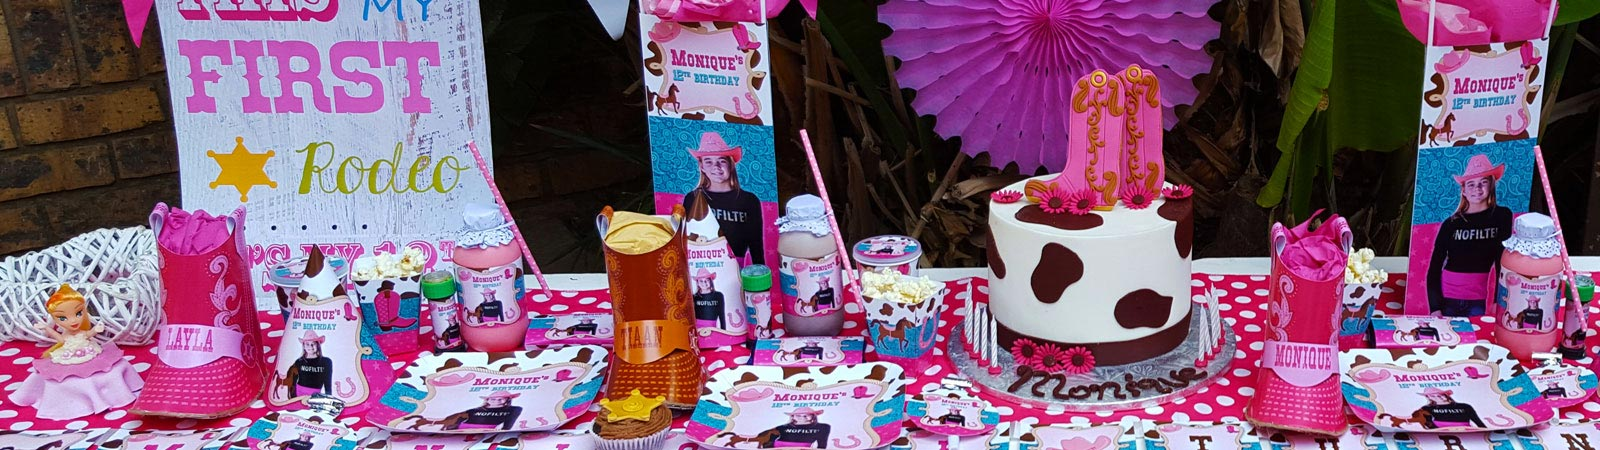 We are a Gauteng based events and party planning company specialising in custom made party supplies